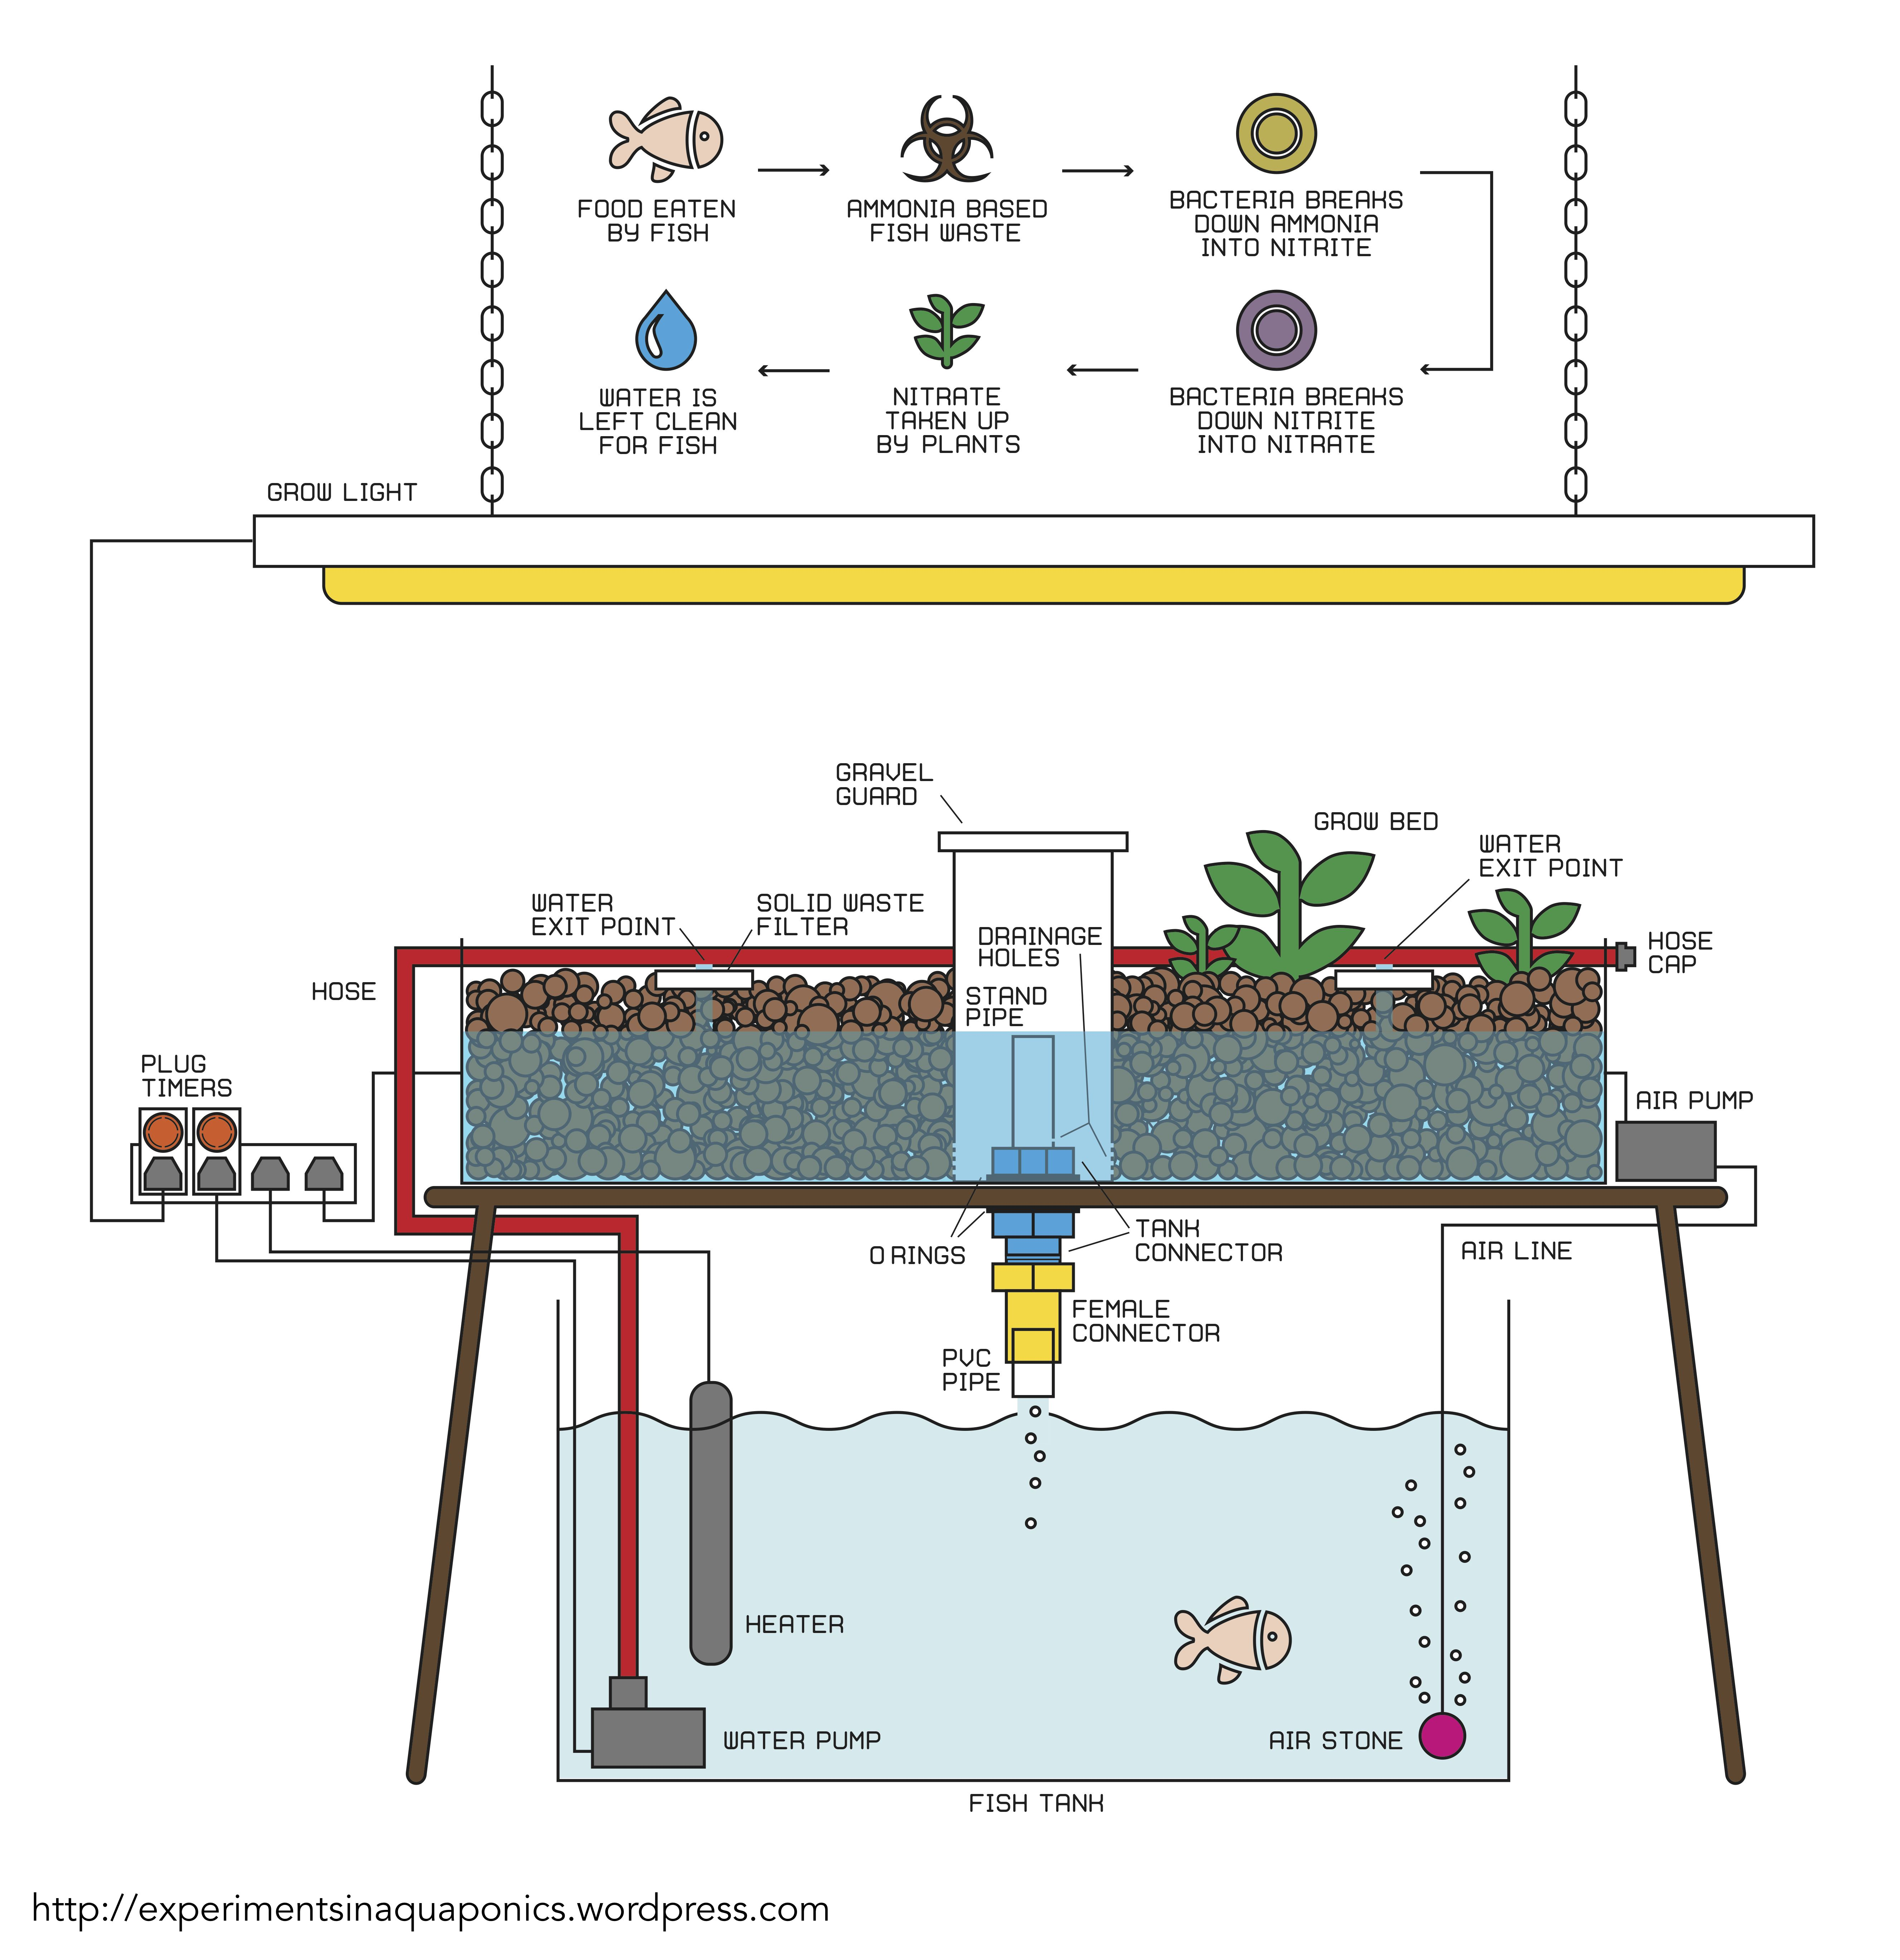 medium resolution of a basic guide to building your own aquaponics system click to enlarge image aquaponics is a technique enabling the sustainable production of edible fish